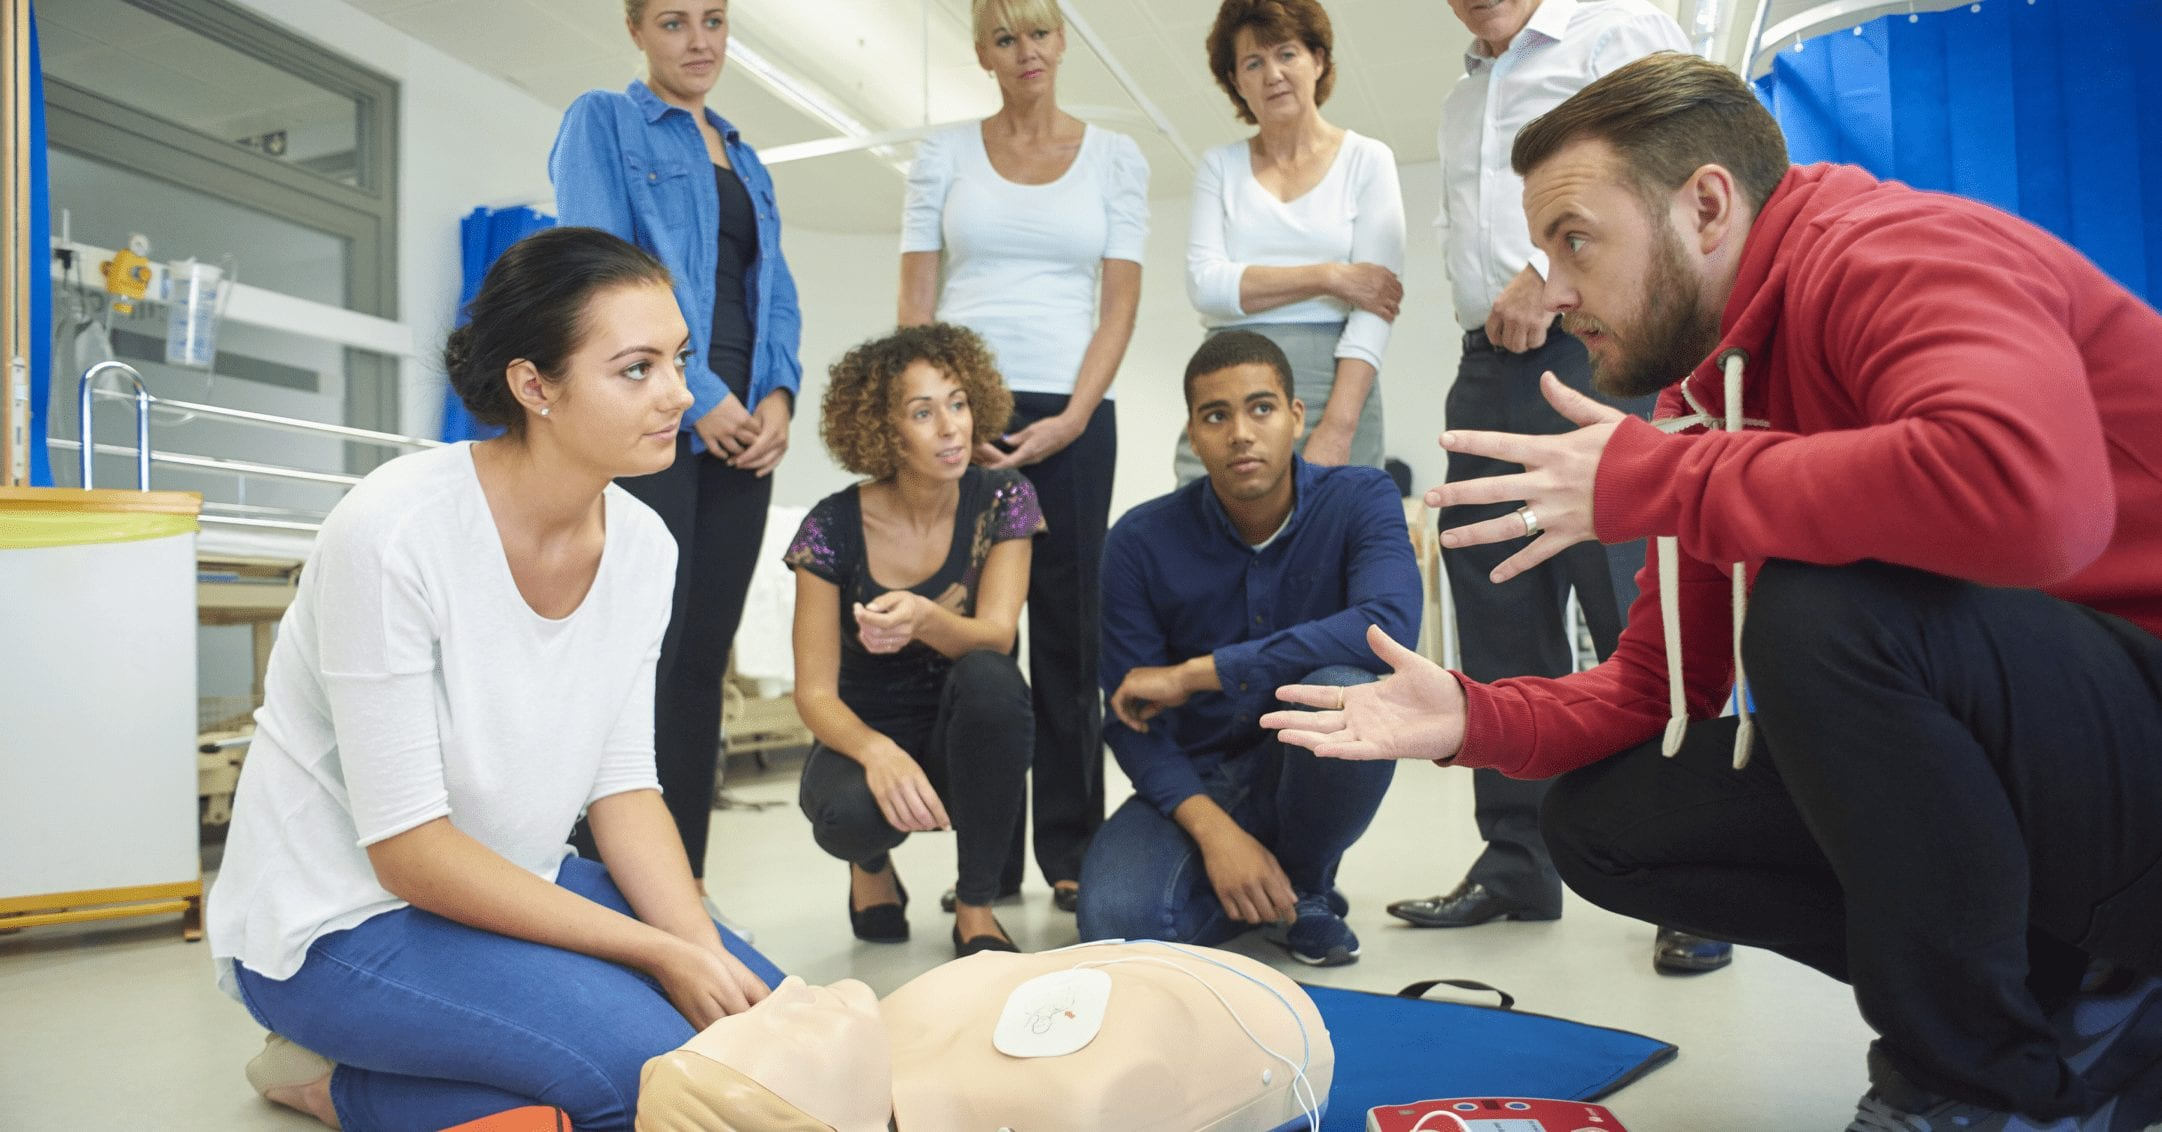 CPR/AED Training- RWJ FITNESS & WELLNESS